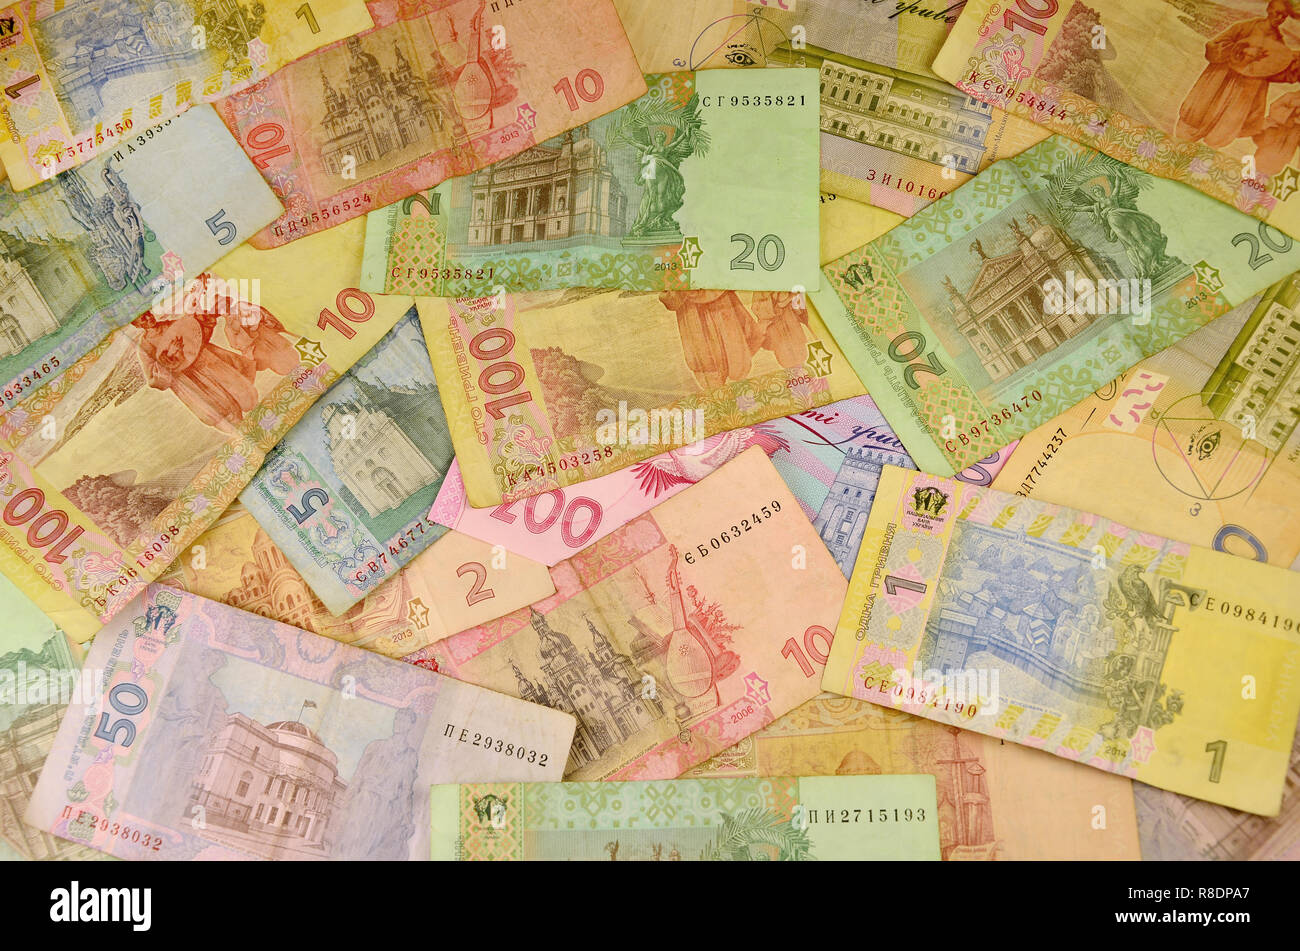 571022134b836 Background image of many Ukrainian banknotes of different colors and size.  Conceptual image for the Ukrainian banking operations